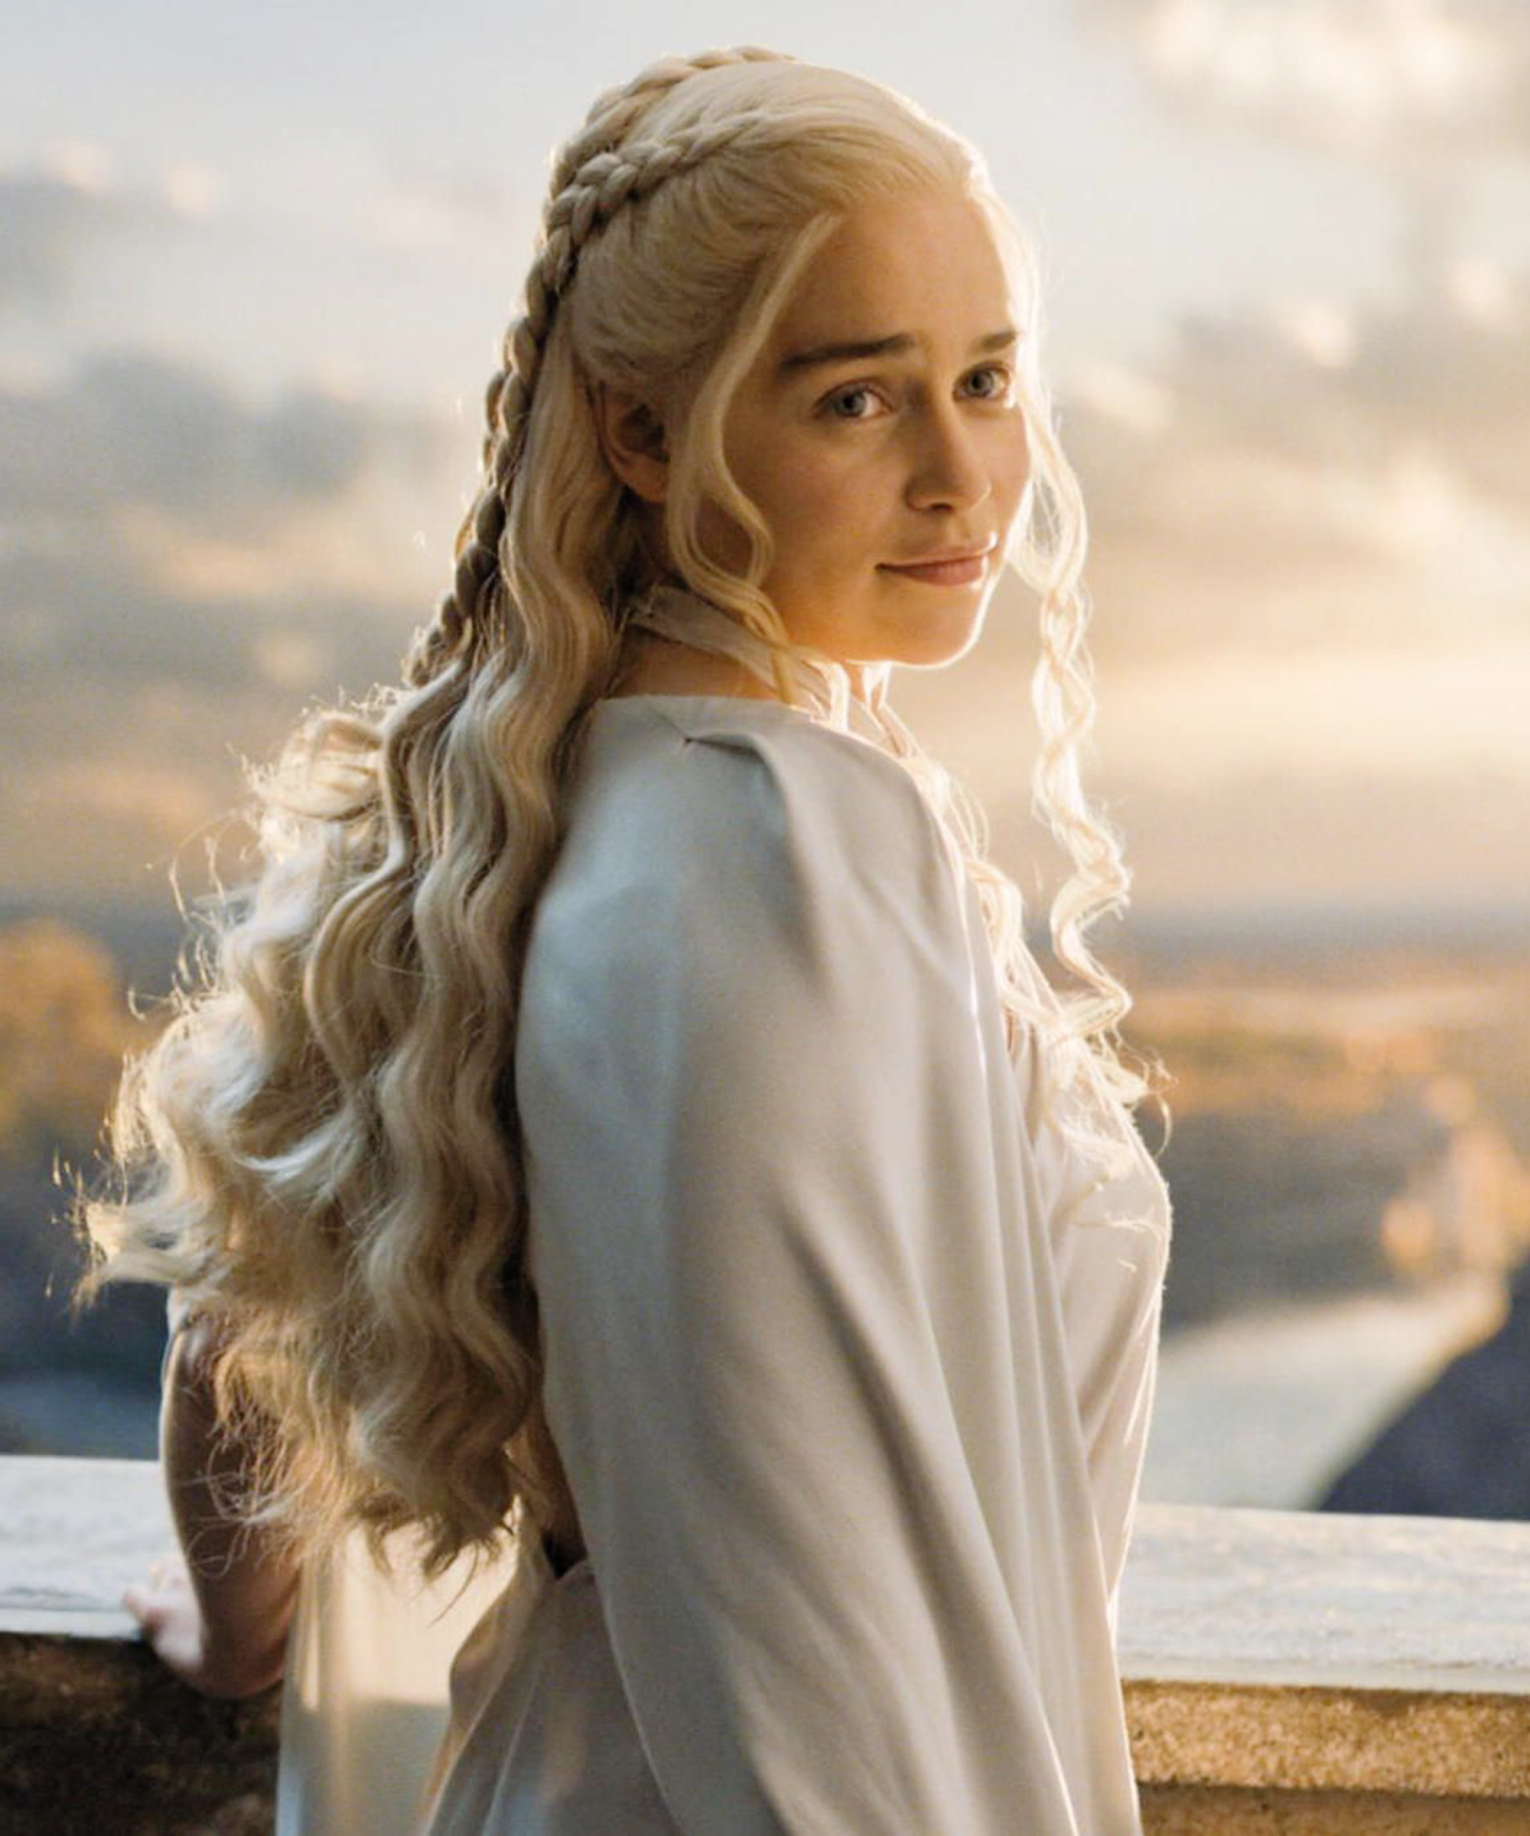 Emilia Clarke Did What During Her Game Of Thrones Audition Game Of Throne Daenerys Throne Jon Snow And Daenerys